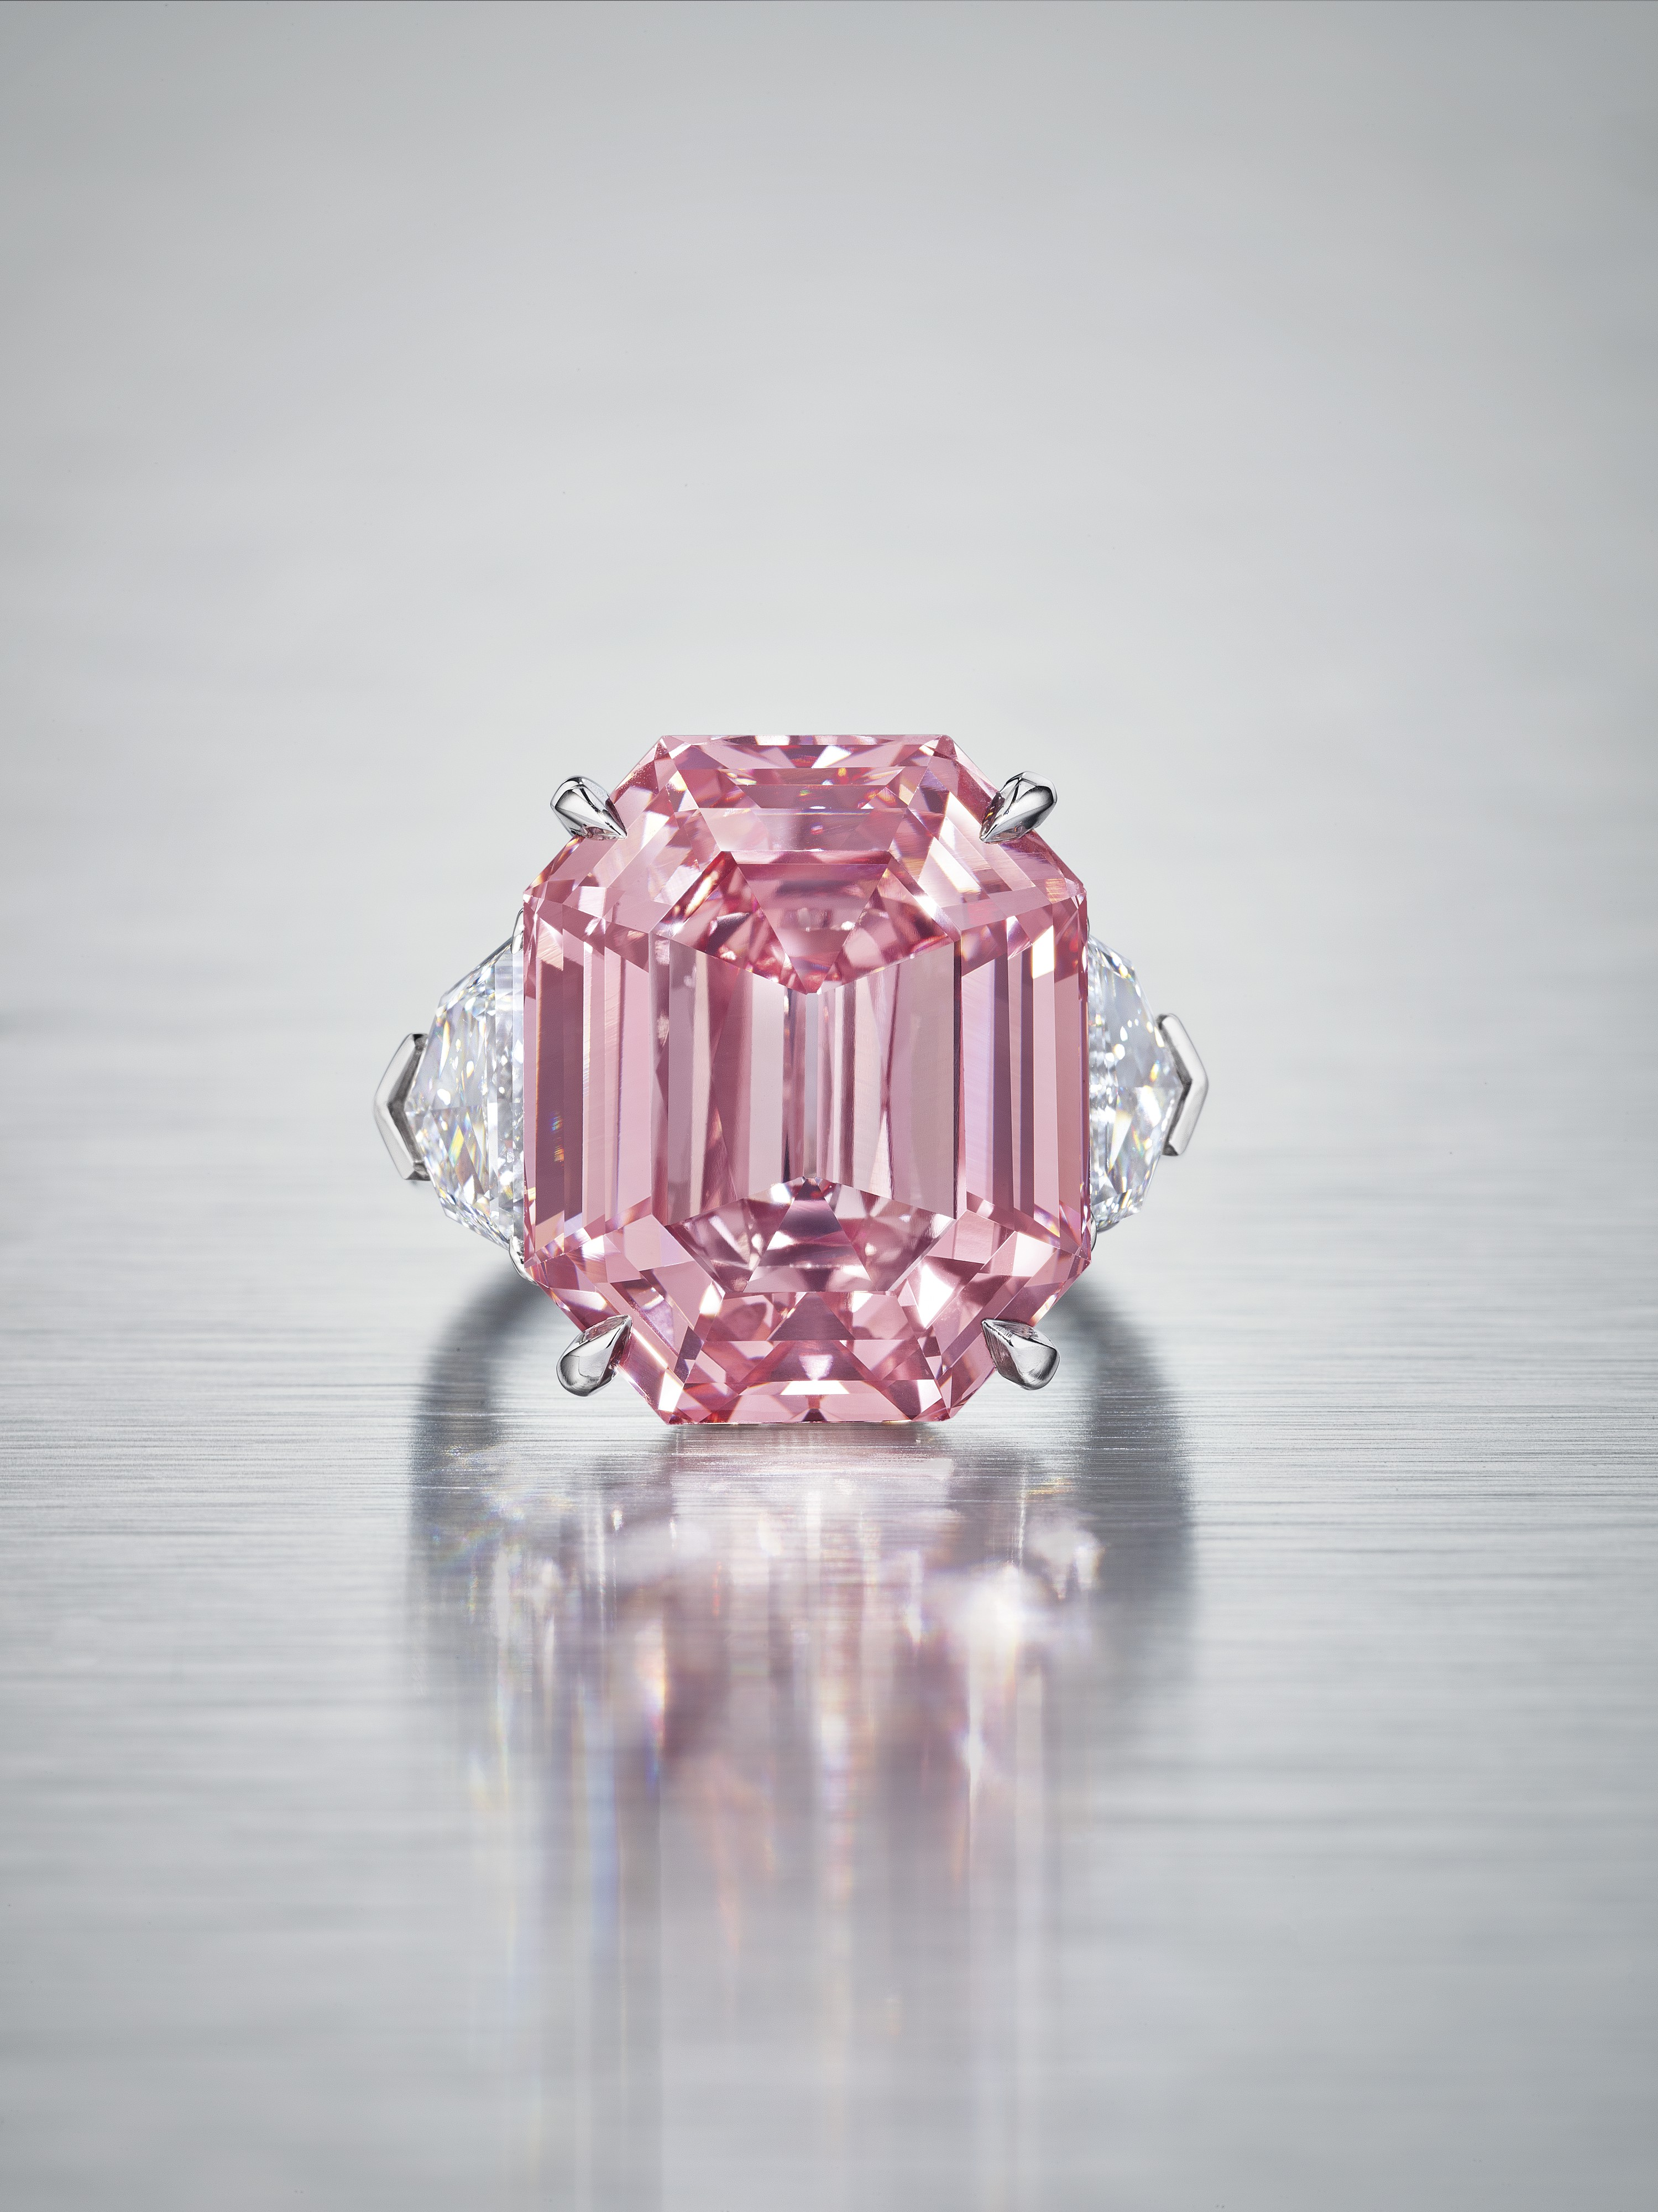 New Owner of Fancy Vivid Pink Diamond: Harry Winston